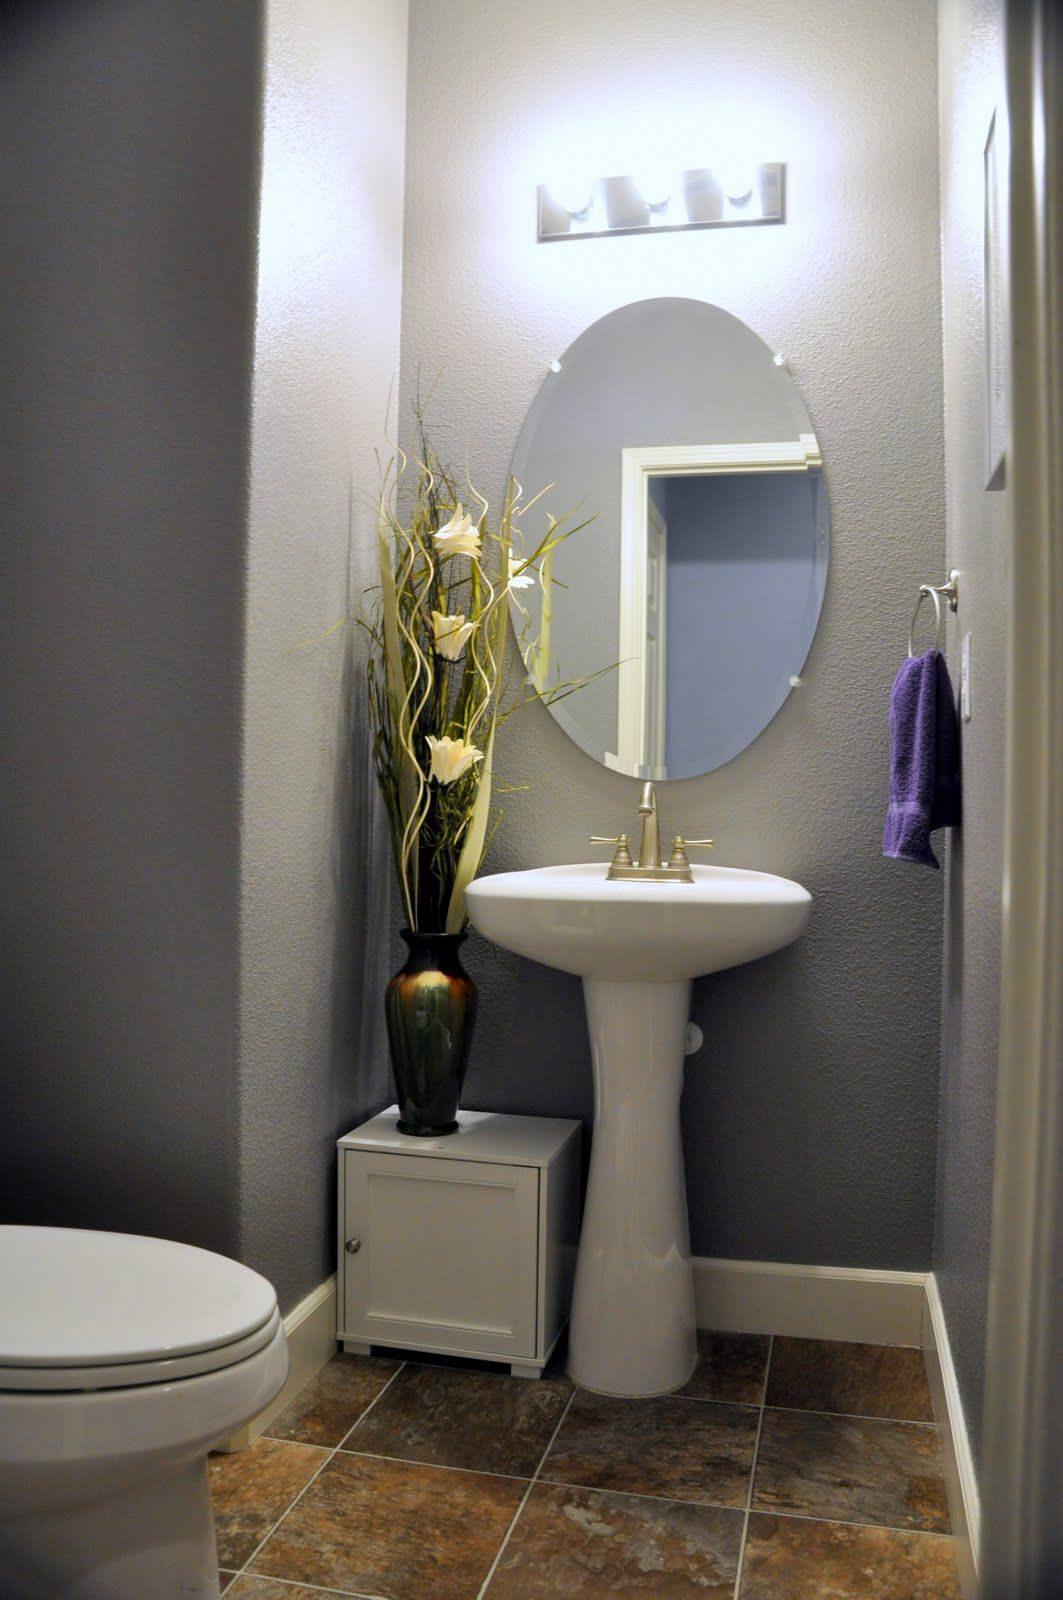 Pedestal Sink Bathroom Designs   Google Search